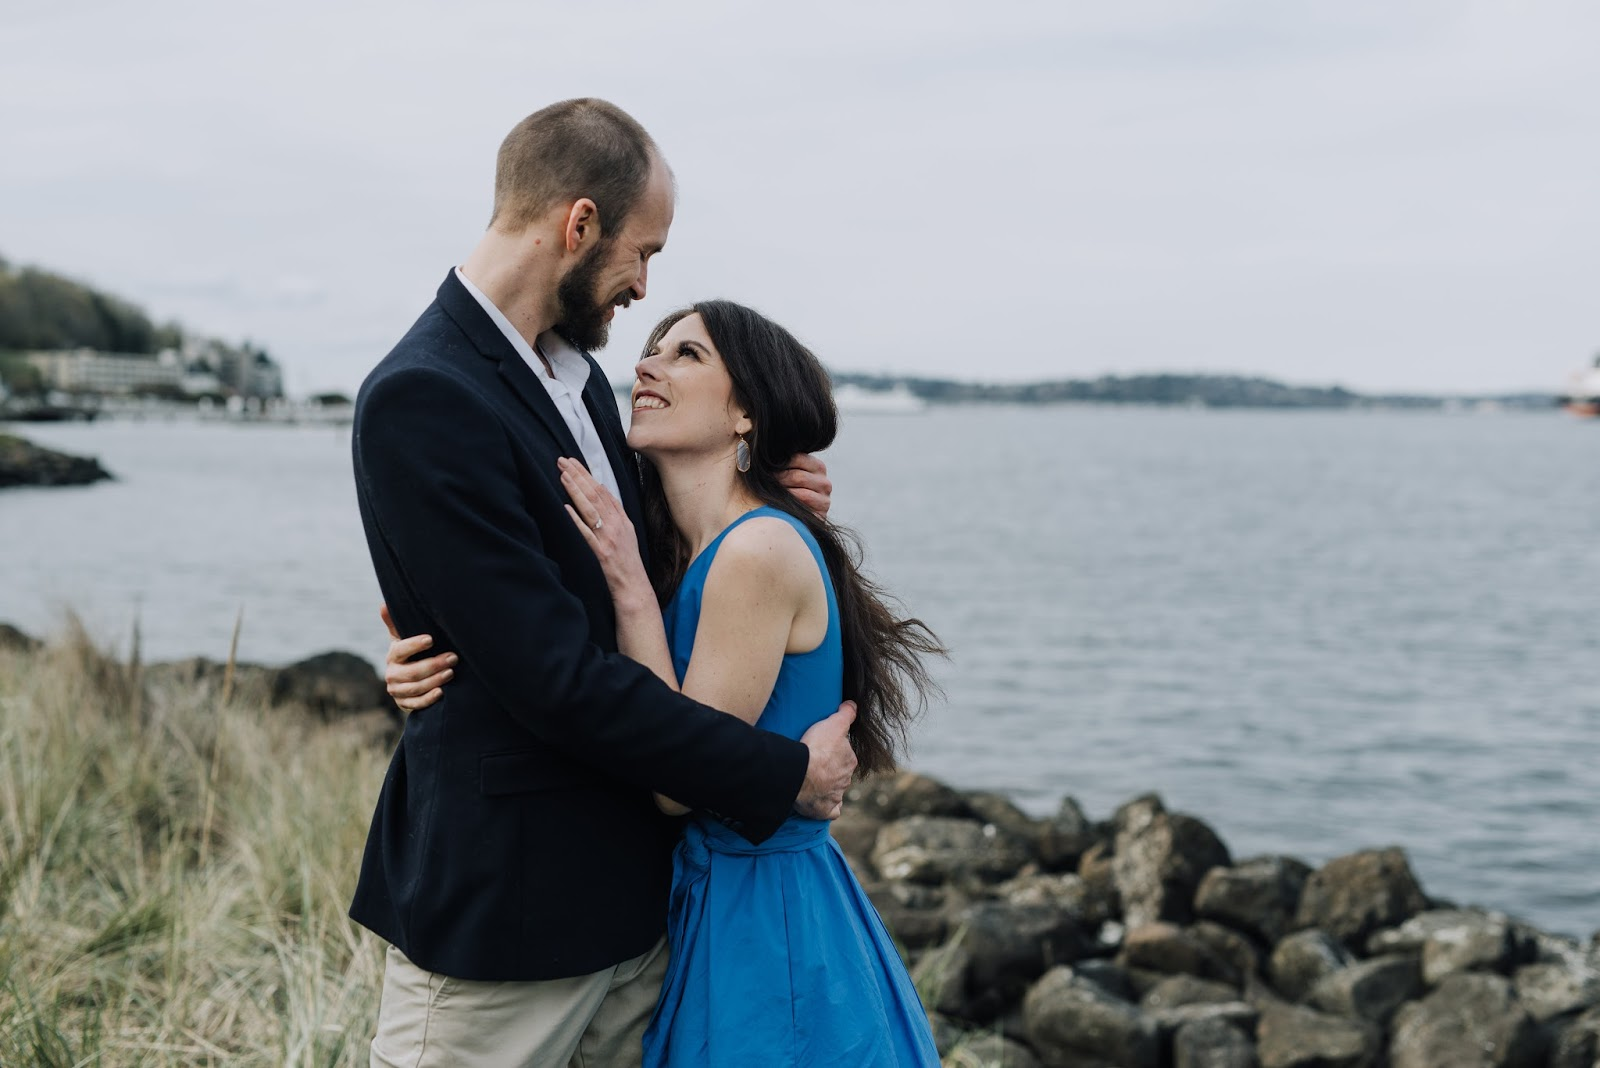 The 6 Best Pieces of Advice We Received Before Our Wedding